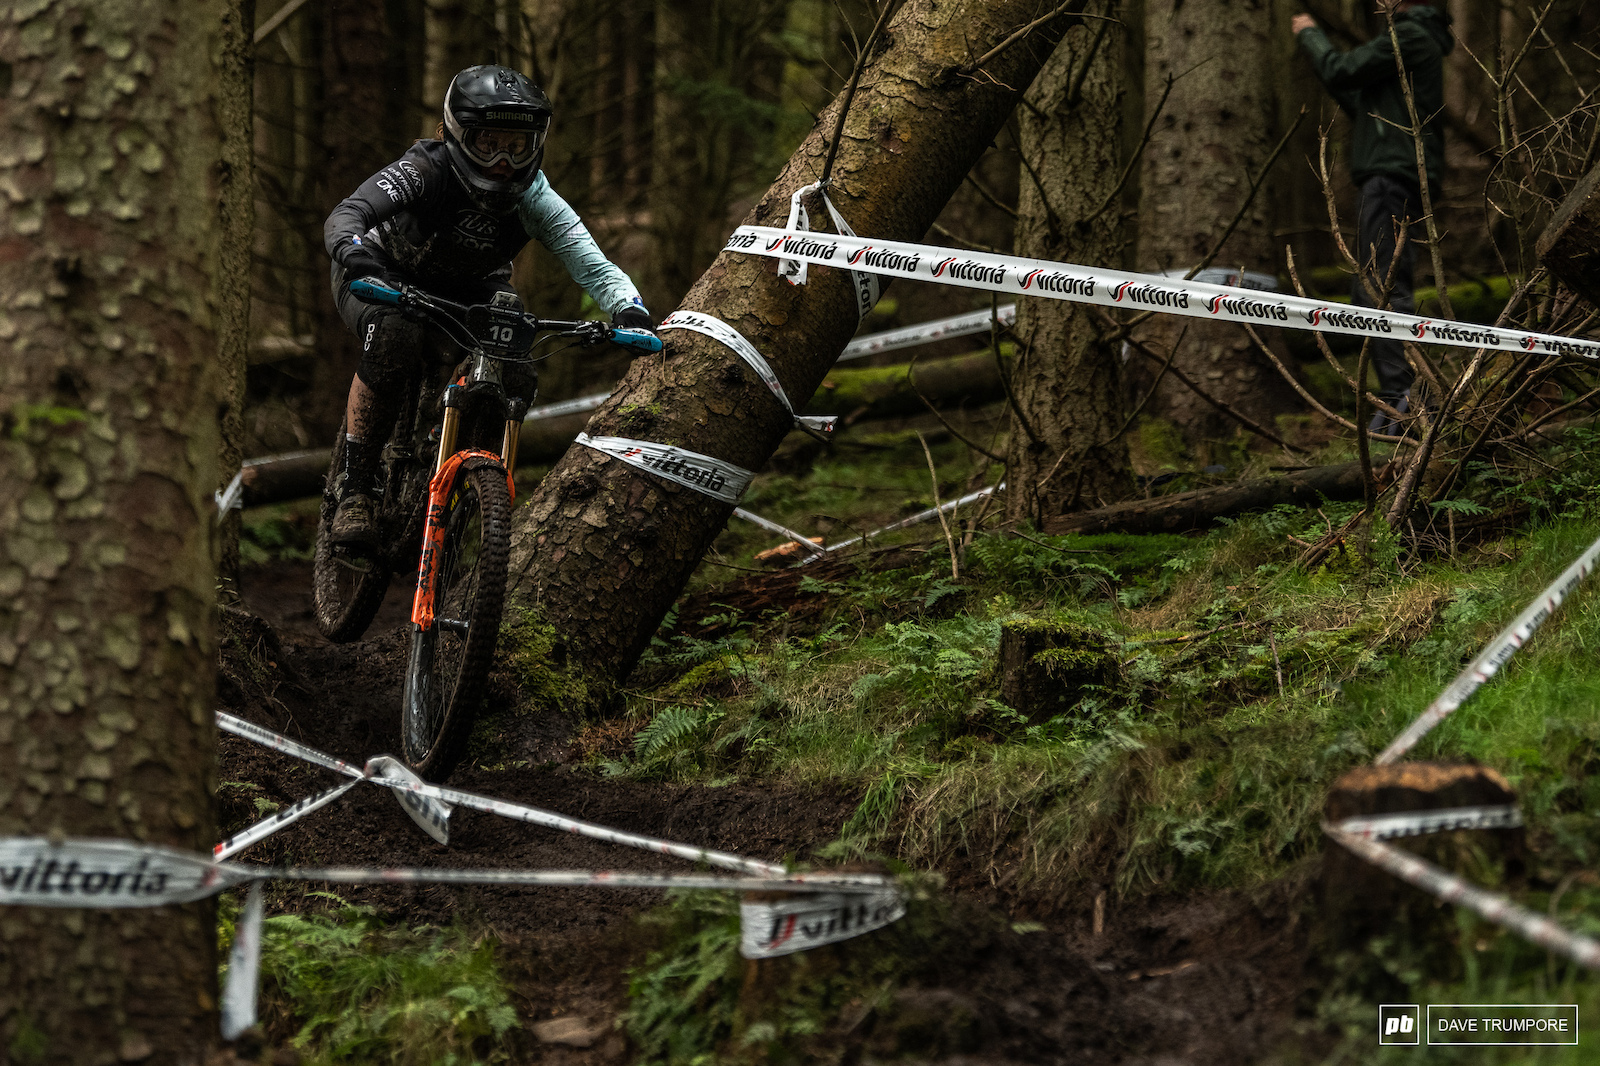 First for Bex Baraona taking her maiden EWS win on home soil in front of friends and family